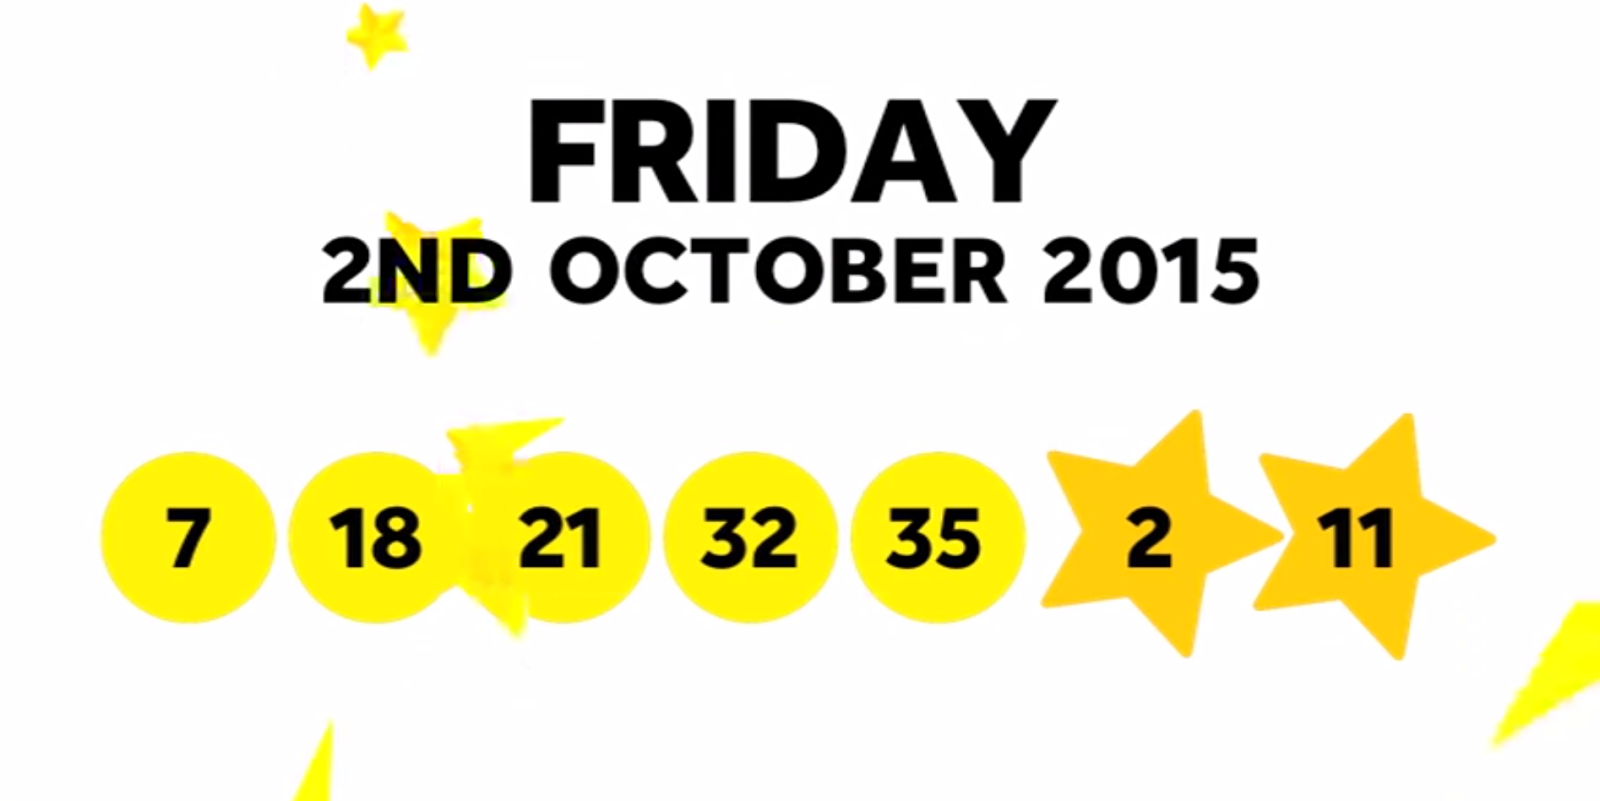 The National Lottery Friday 'EuroMillions' draw results from 2nd October 2015: 7,18,21,32,35 and Lucky Stars: 2,11